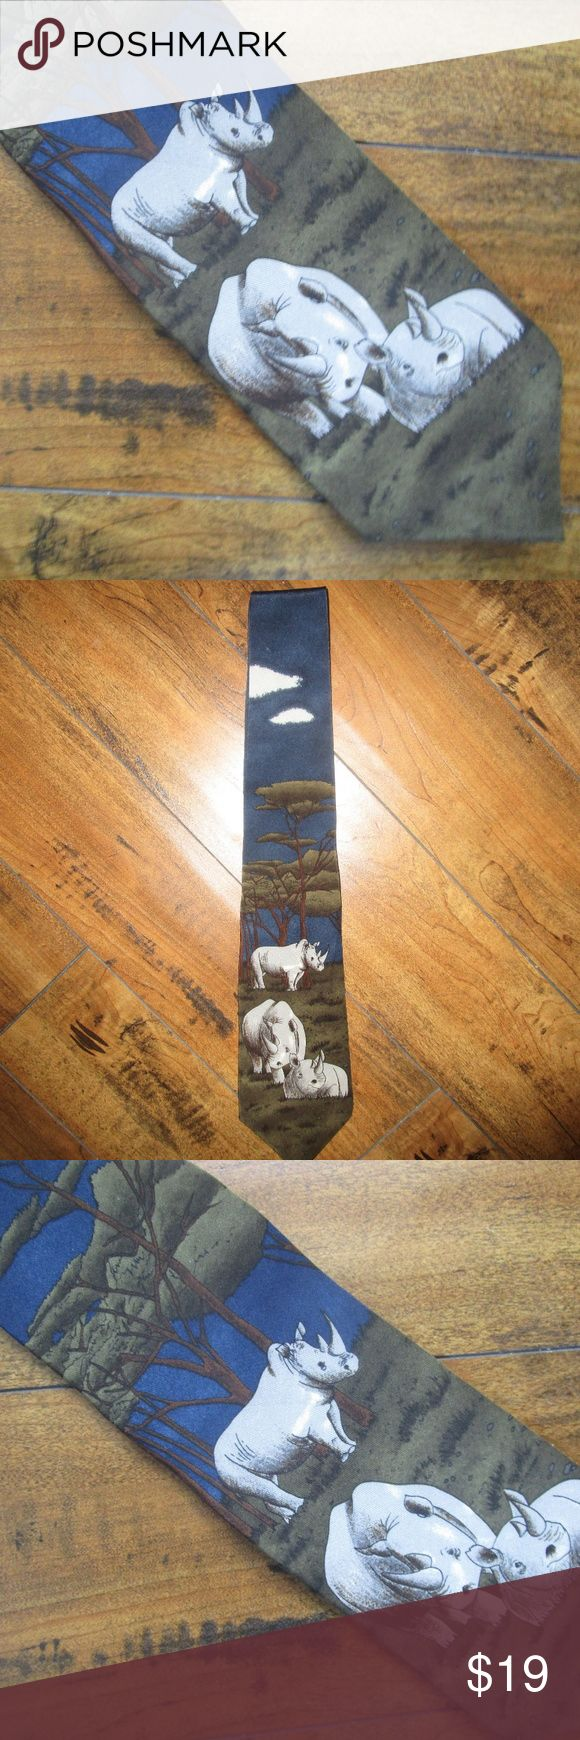 WWF Black Rhinoceros tie WWF Black Rhinoceros tie gorgeous print of 3 happy hippos living peacefully in their habitat WWF Accessories Ties